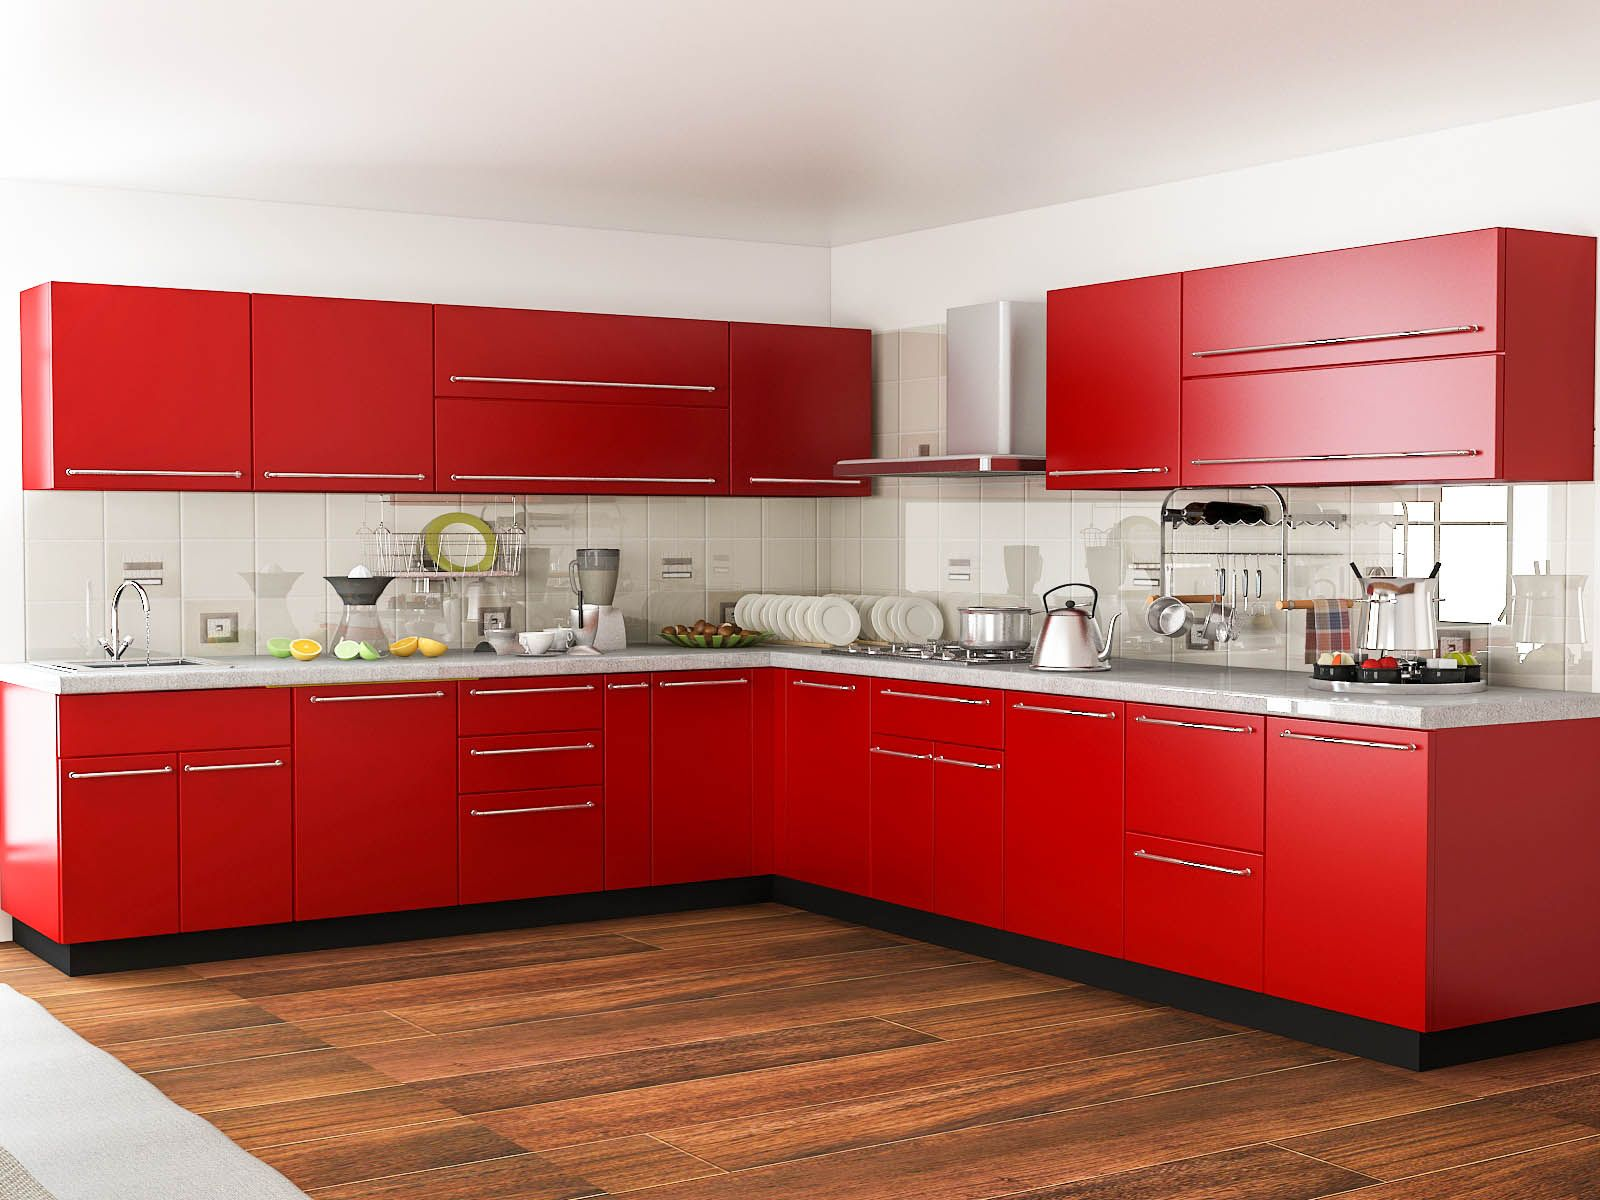 Customfurnish L Shaped Red Kitchen  L Shaped Modular Kitchens Stunning Modular Kitchen L Shape Design Inspiration Design